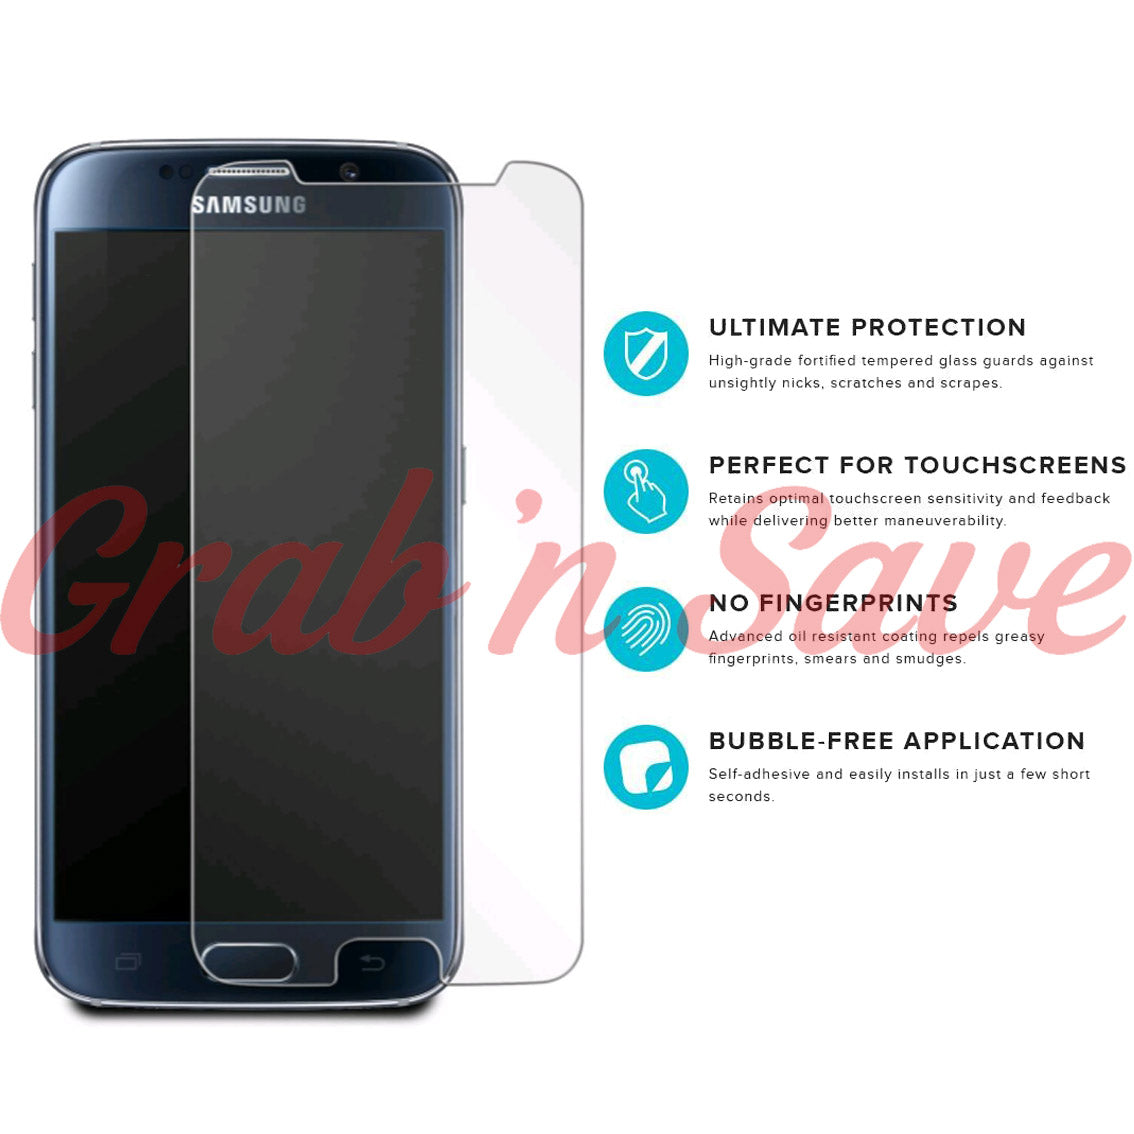 Samsung S7 Screen Protector, Glass Screen Protector, Tempered Glass Screen Protector